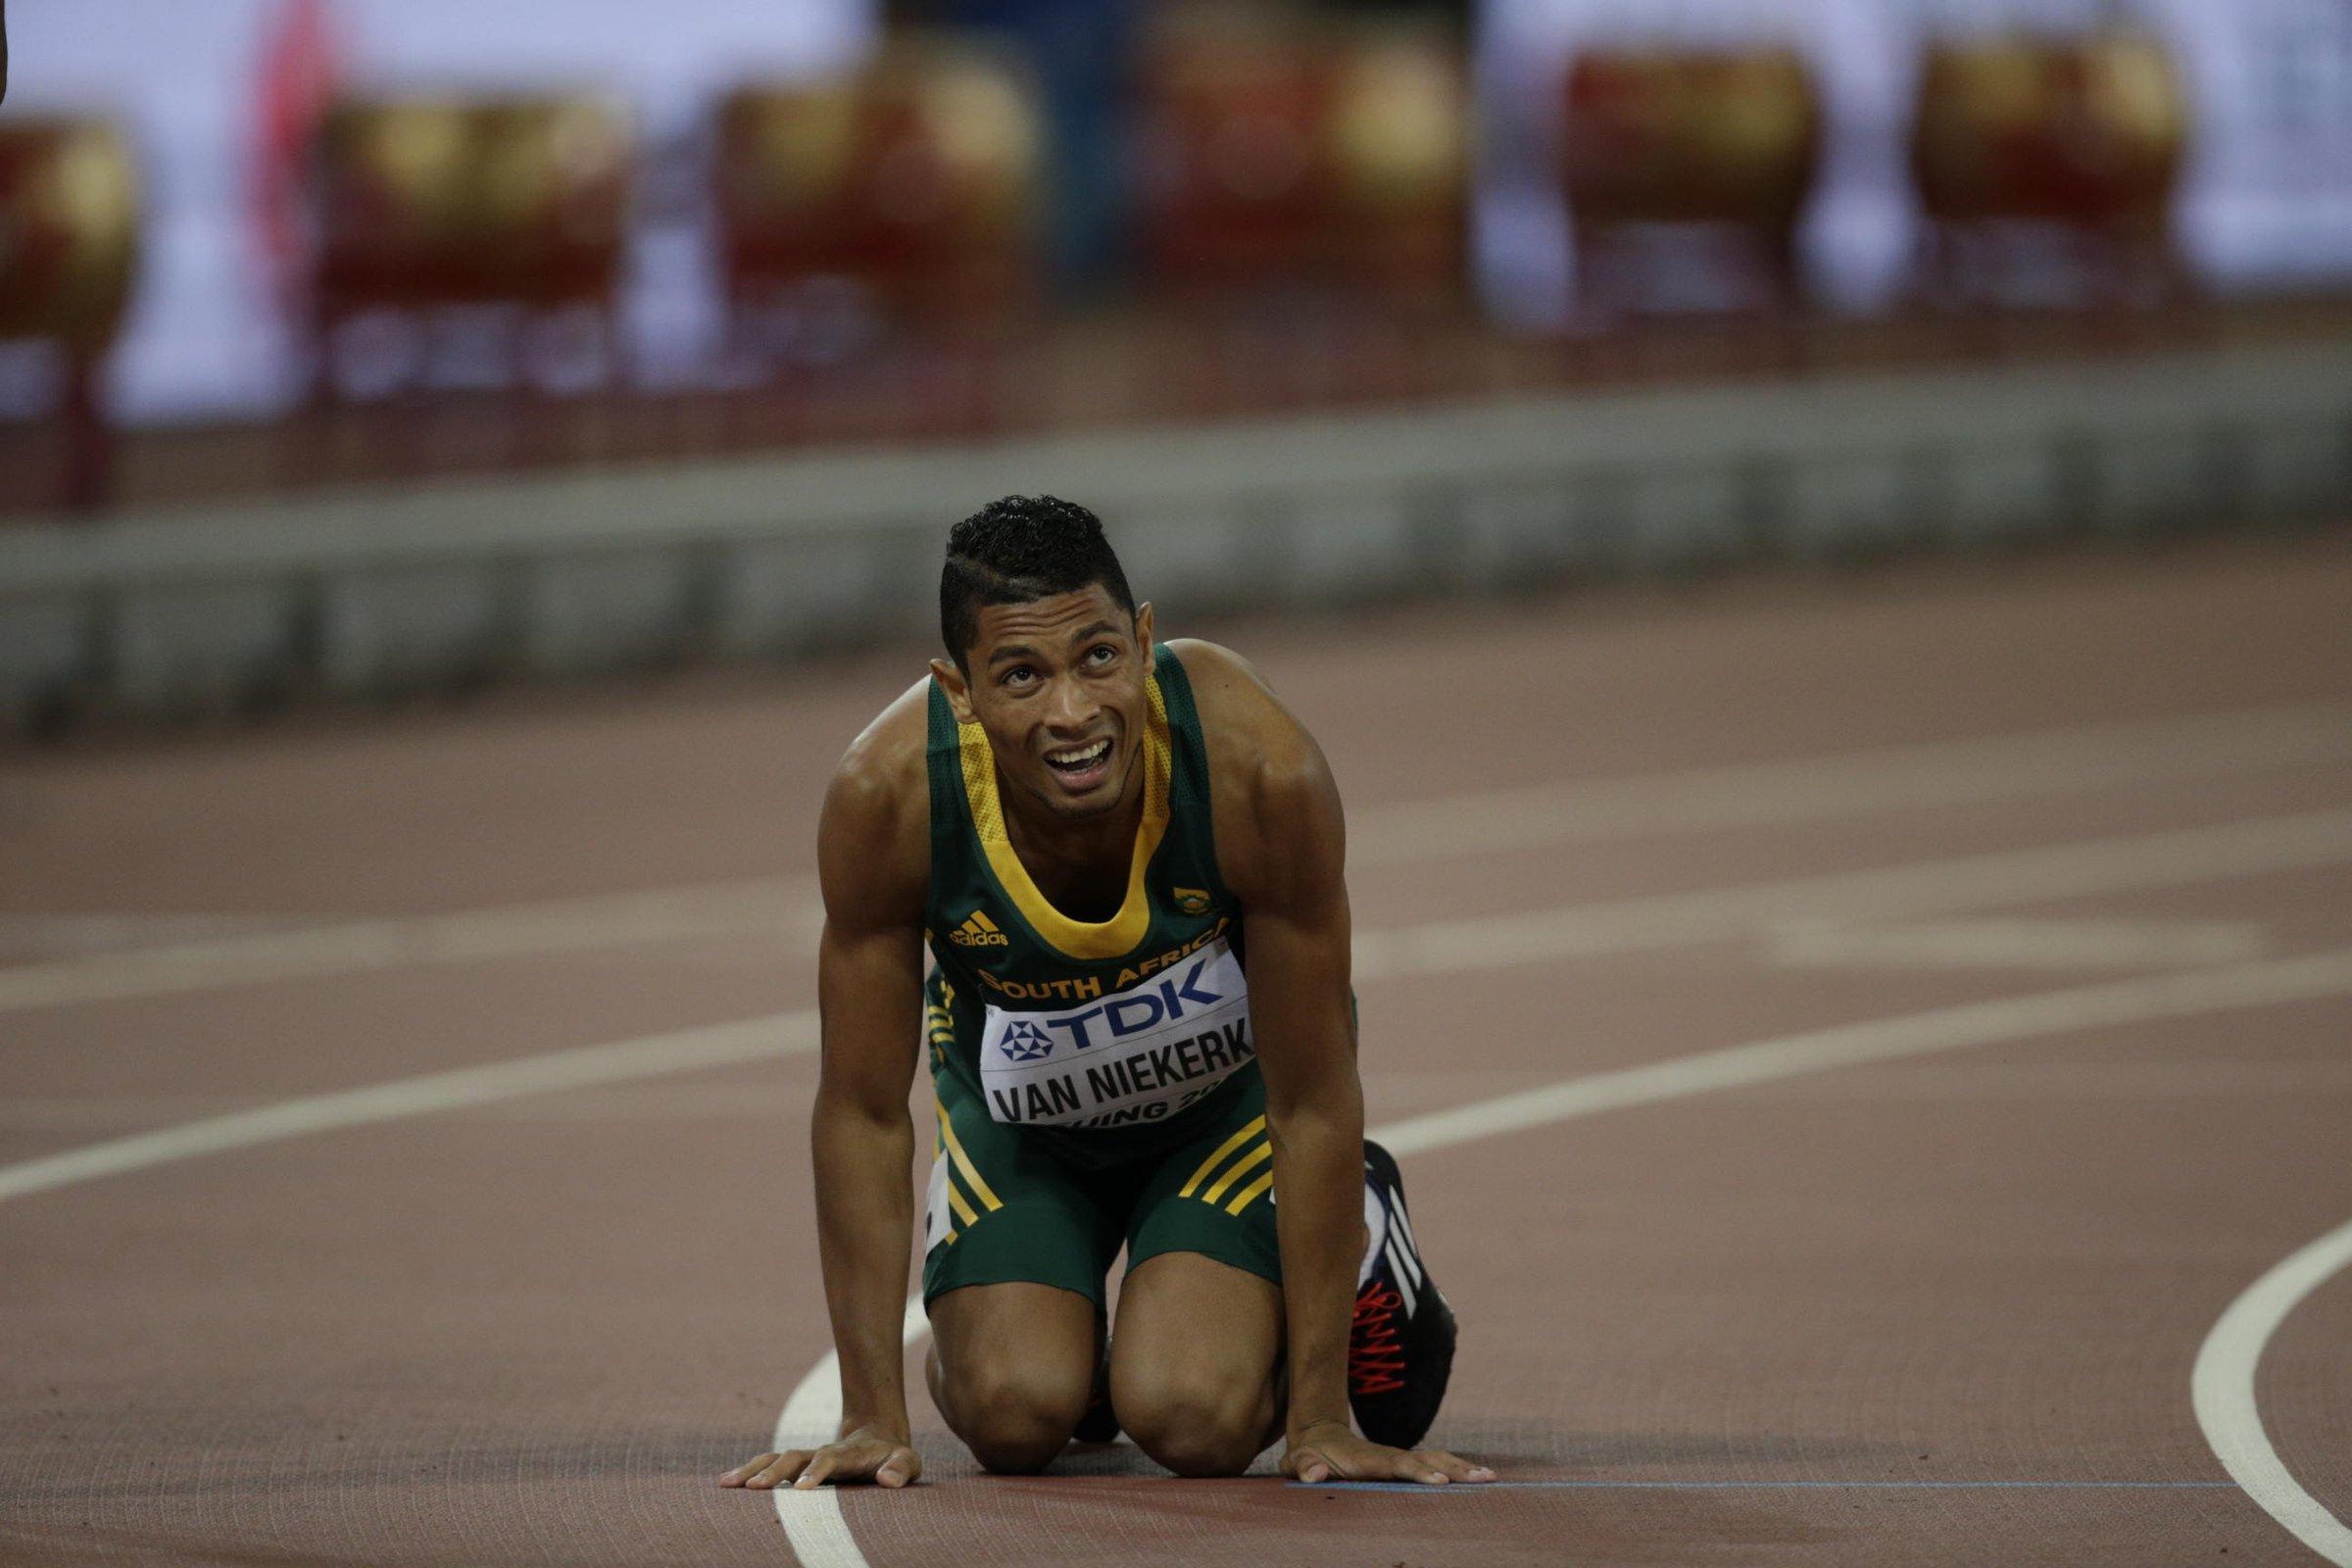 Wayde Van Niekerk (RSA) sits on the ground after running 43.48 seconds for 400-meters and winning South Africa's lone gold medal of the championships.